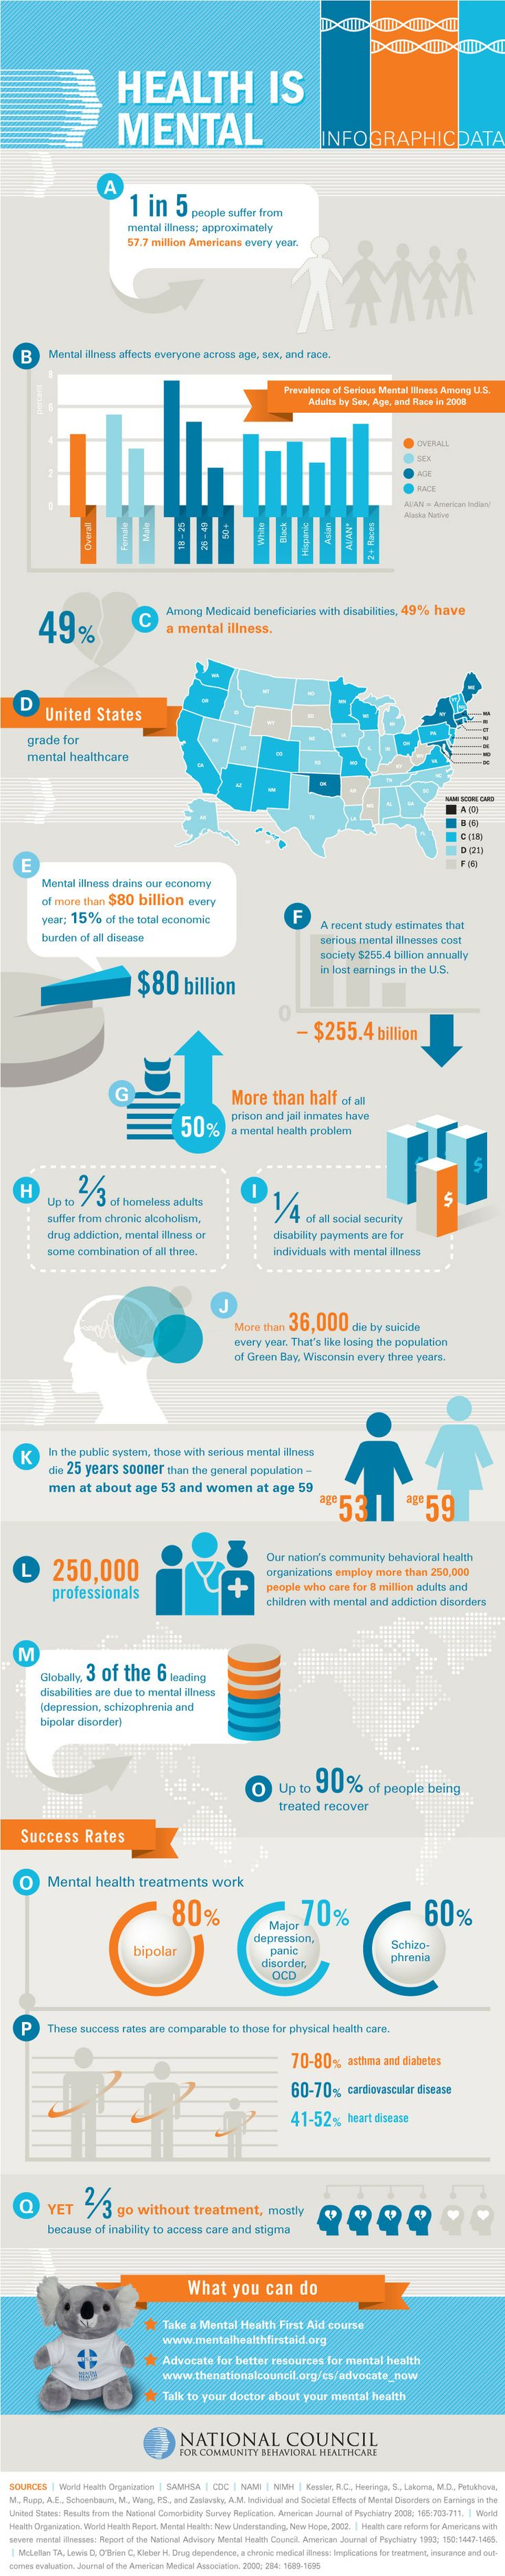 hese are mental health statistics provided by the National Institute of Mental Health Disorders:    Mental health disorders make up 4 of the leading 10 reasons for disability worldwide within established market economies, and include: bipolar disorder, major depression, schizophrenia, as well as obsessive compulsive disorder.